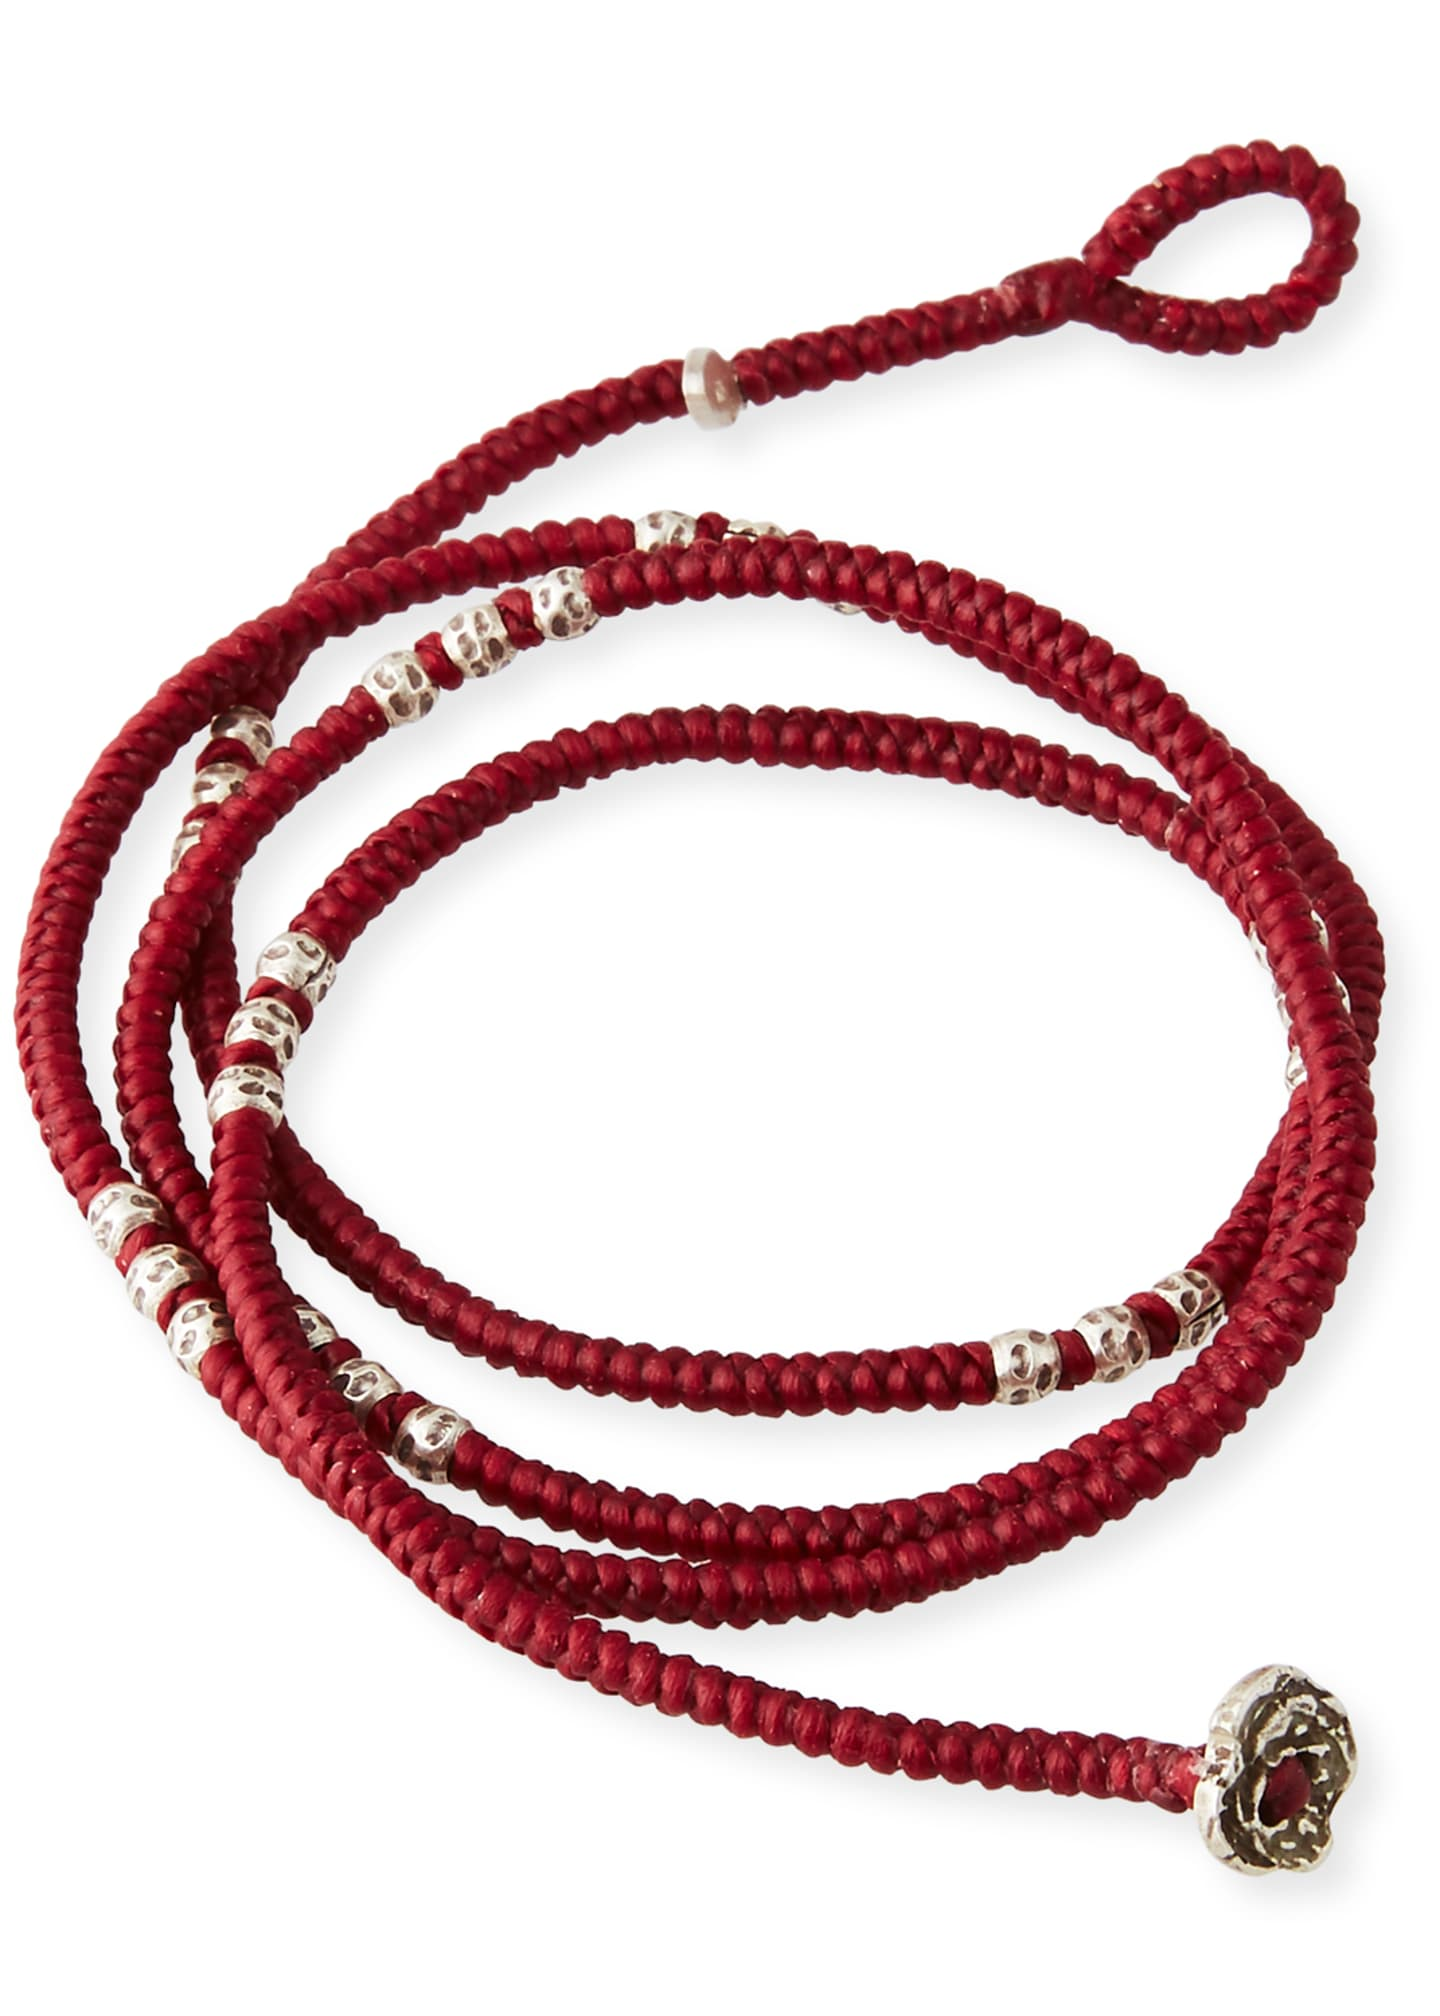 Image 2 of 2: Men's Knotted Wrap Bracelet with Silver Beads, Red